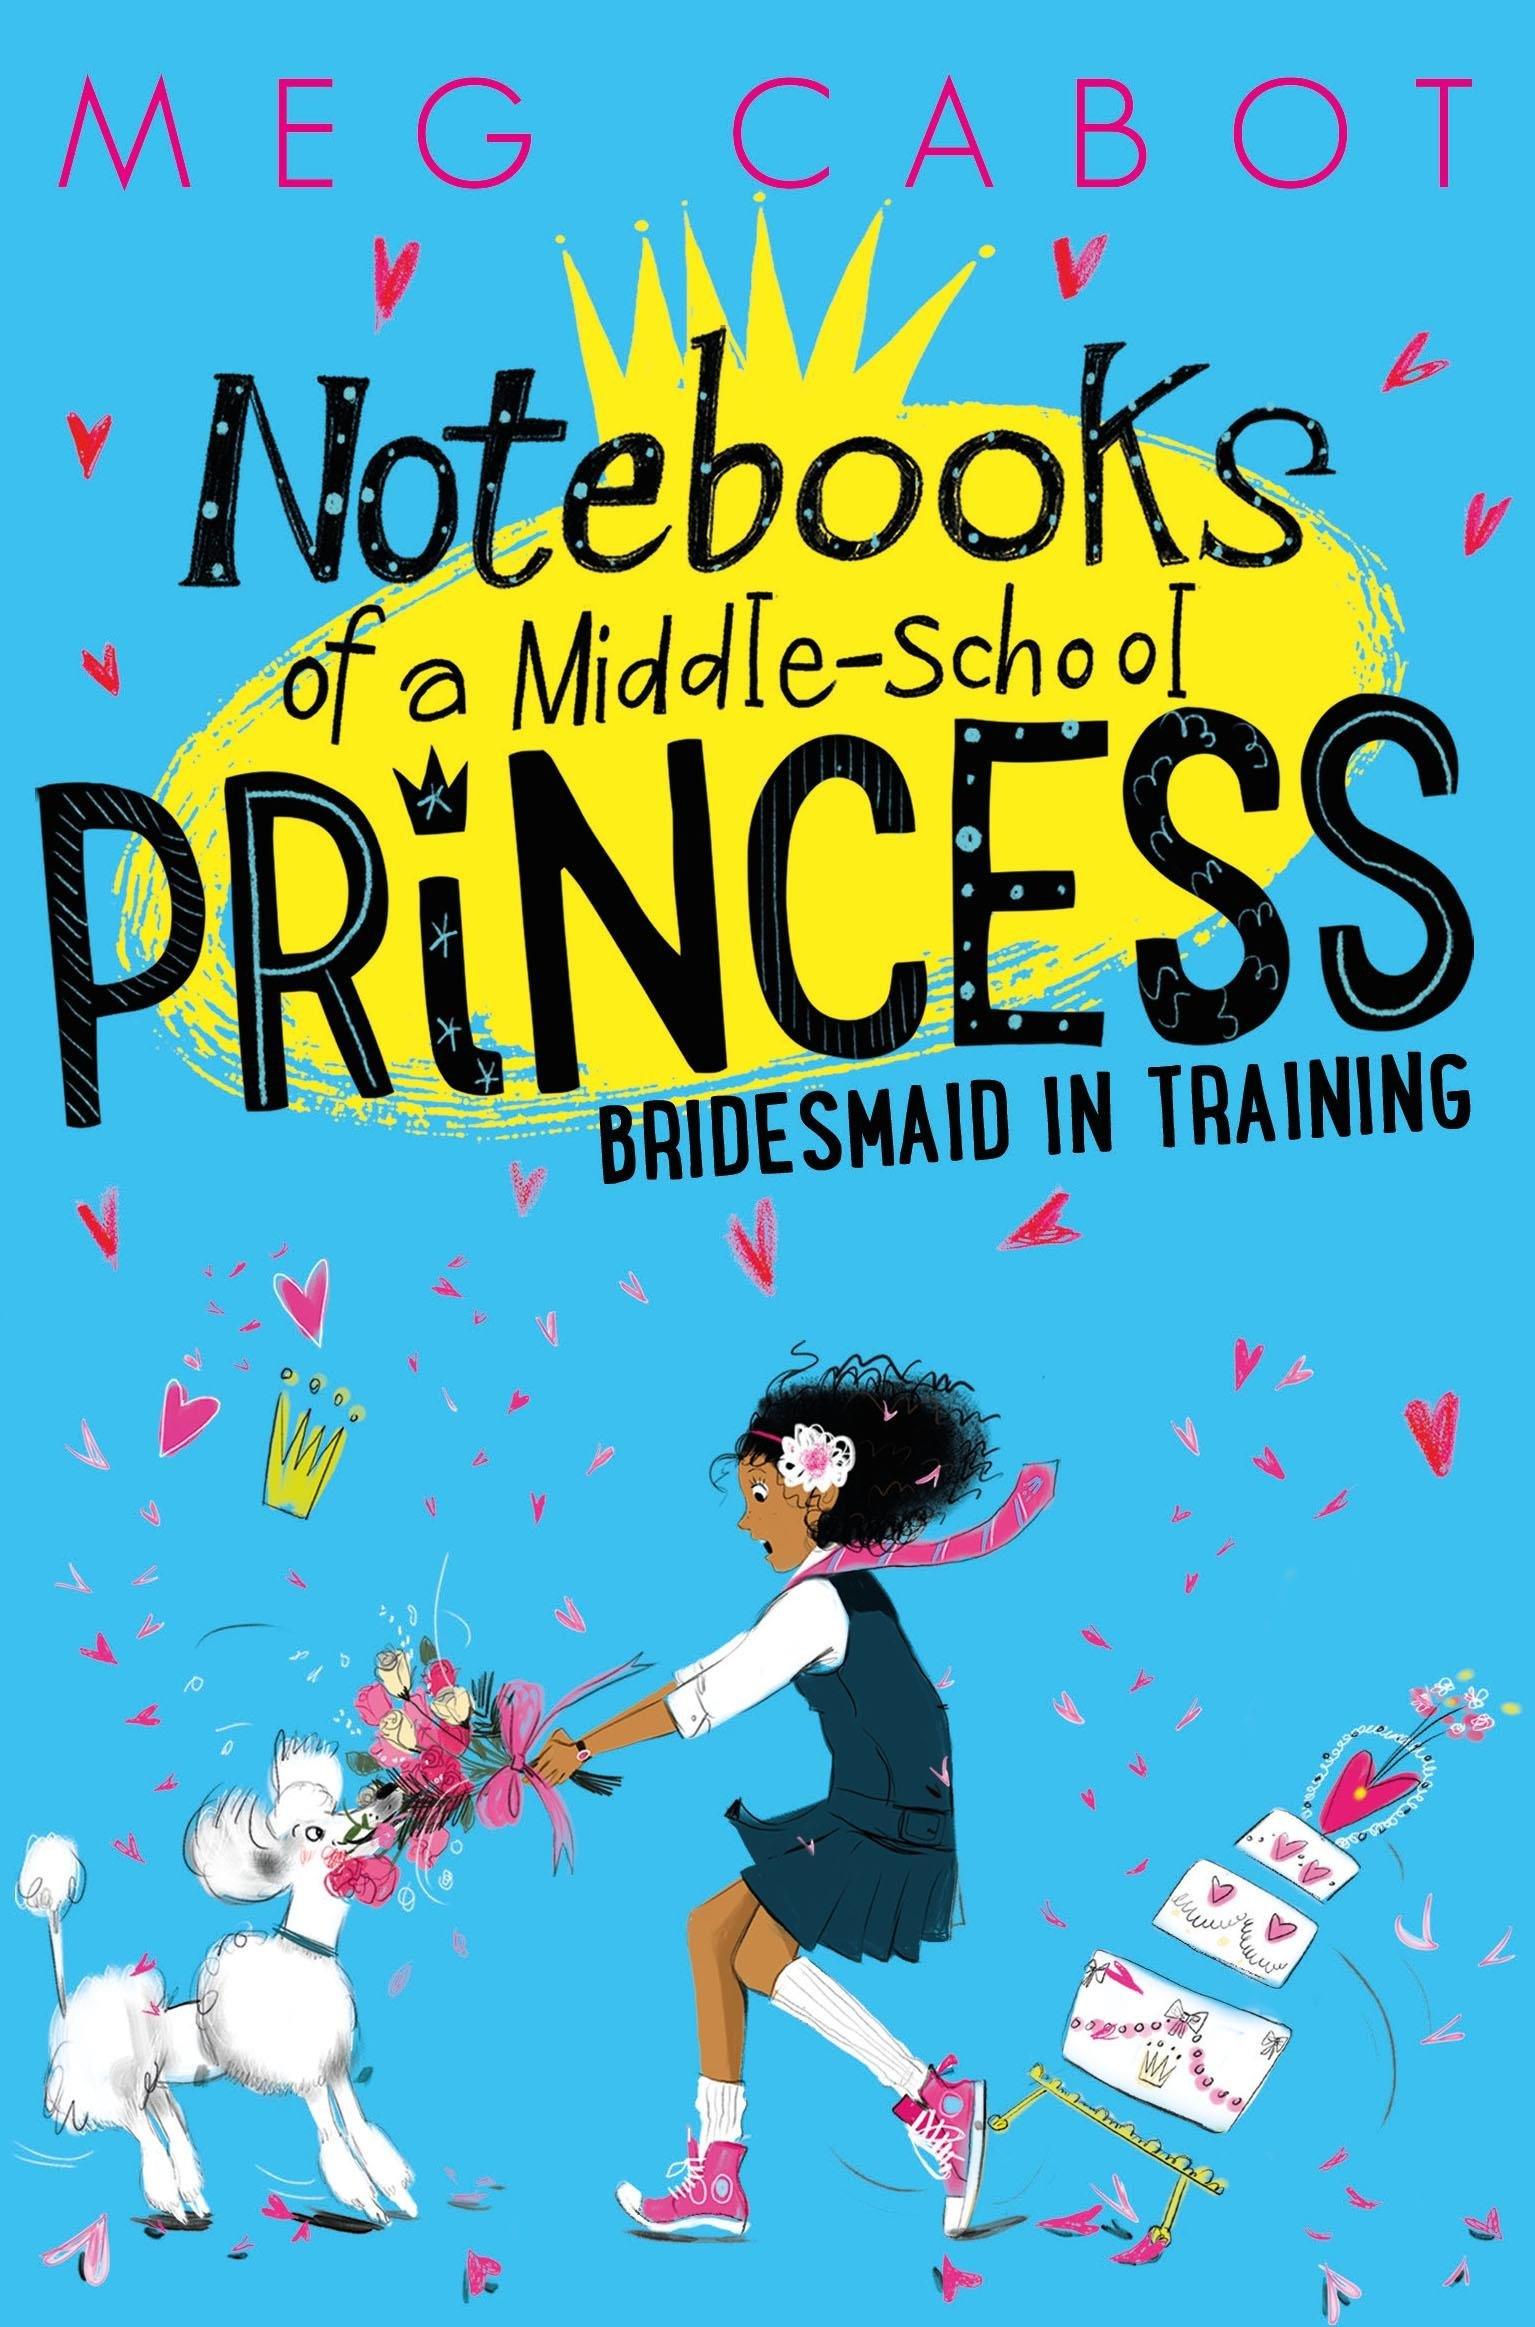 Notebooks of a Middle-School Princess: Bridesmaid in Training seeing things as they are